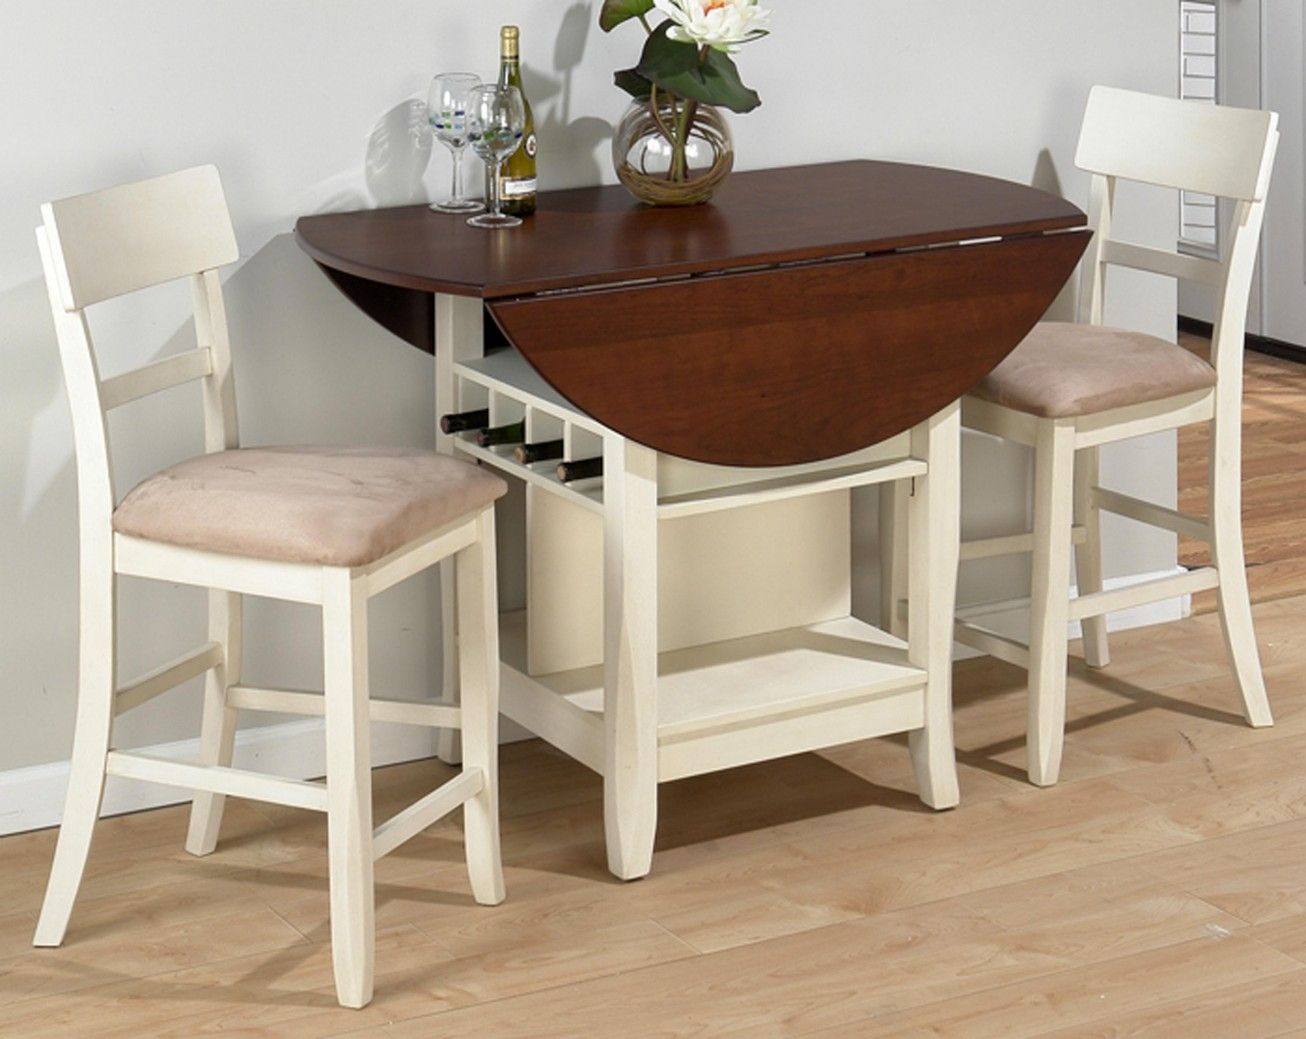 Small Drop Leaf Kitchen Tables.Small Drop Leaf Kitchen Tables Outofhome In Dimensions 1000